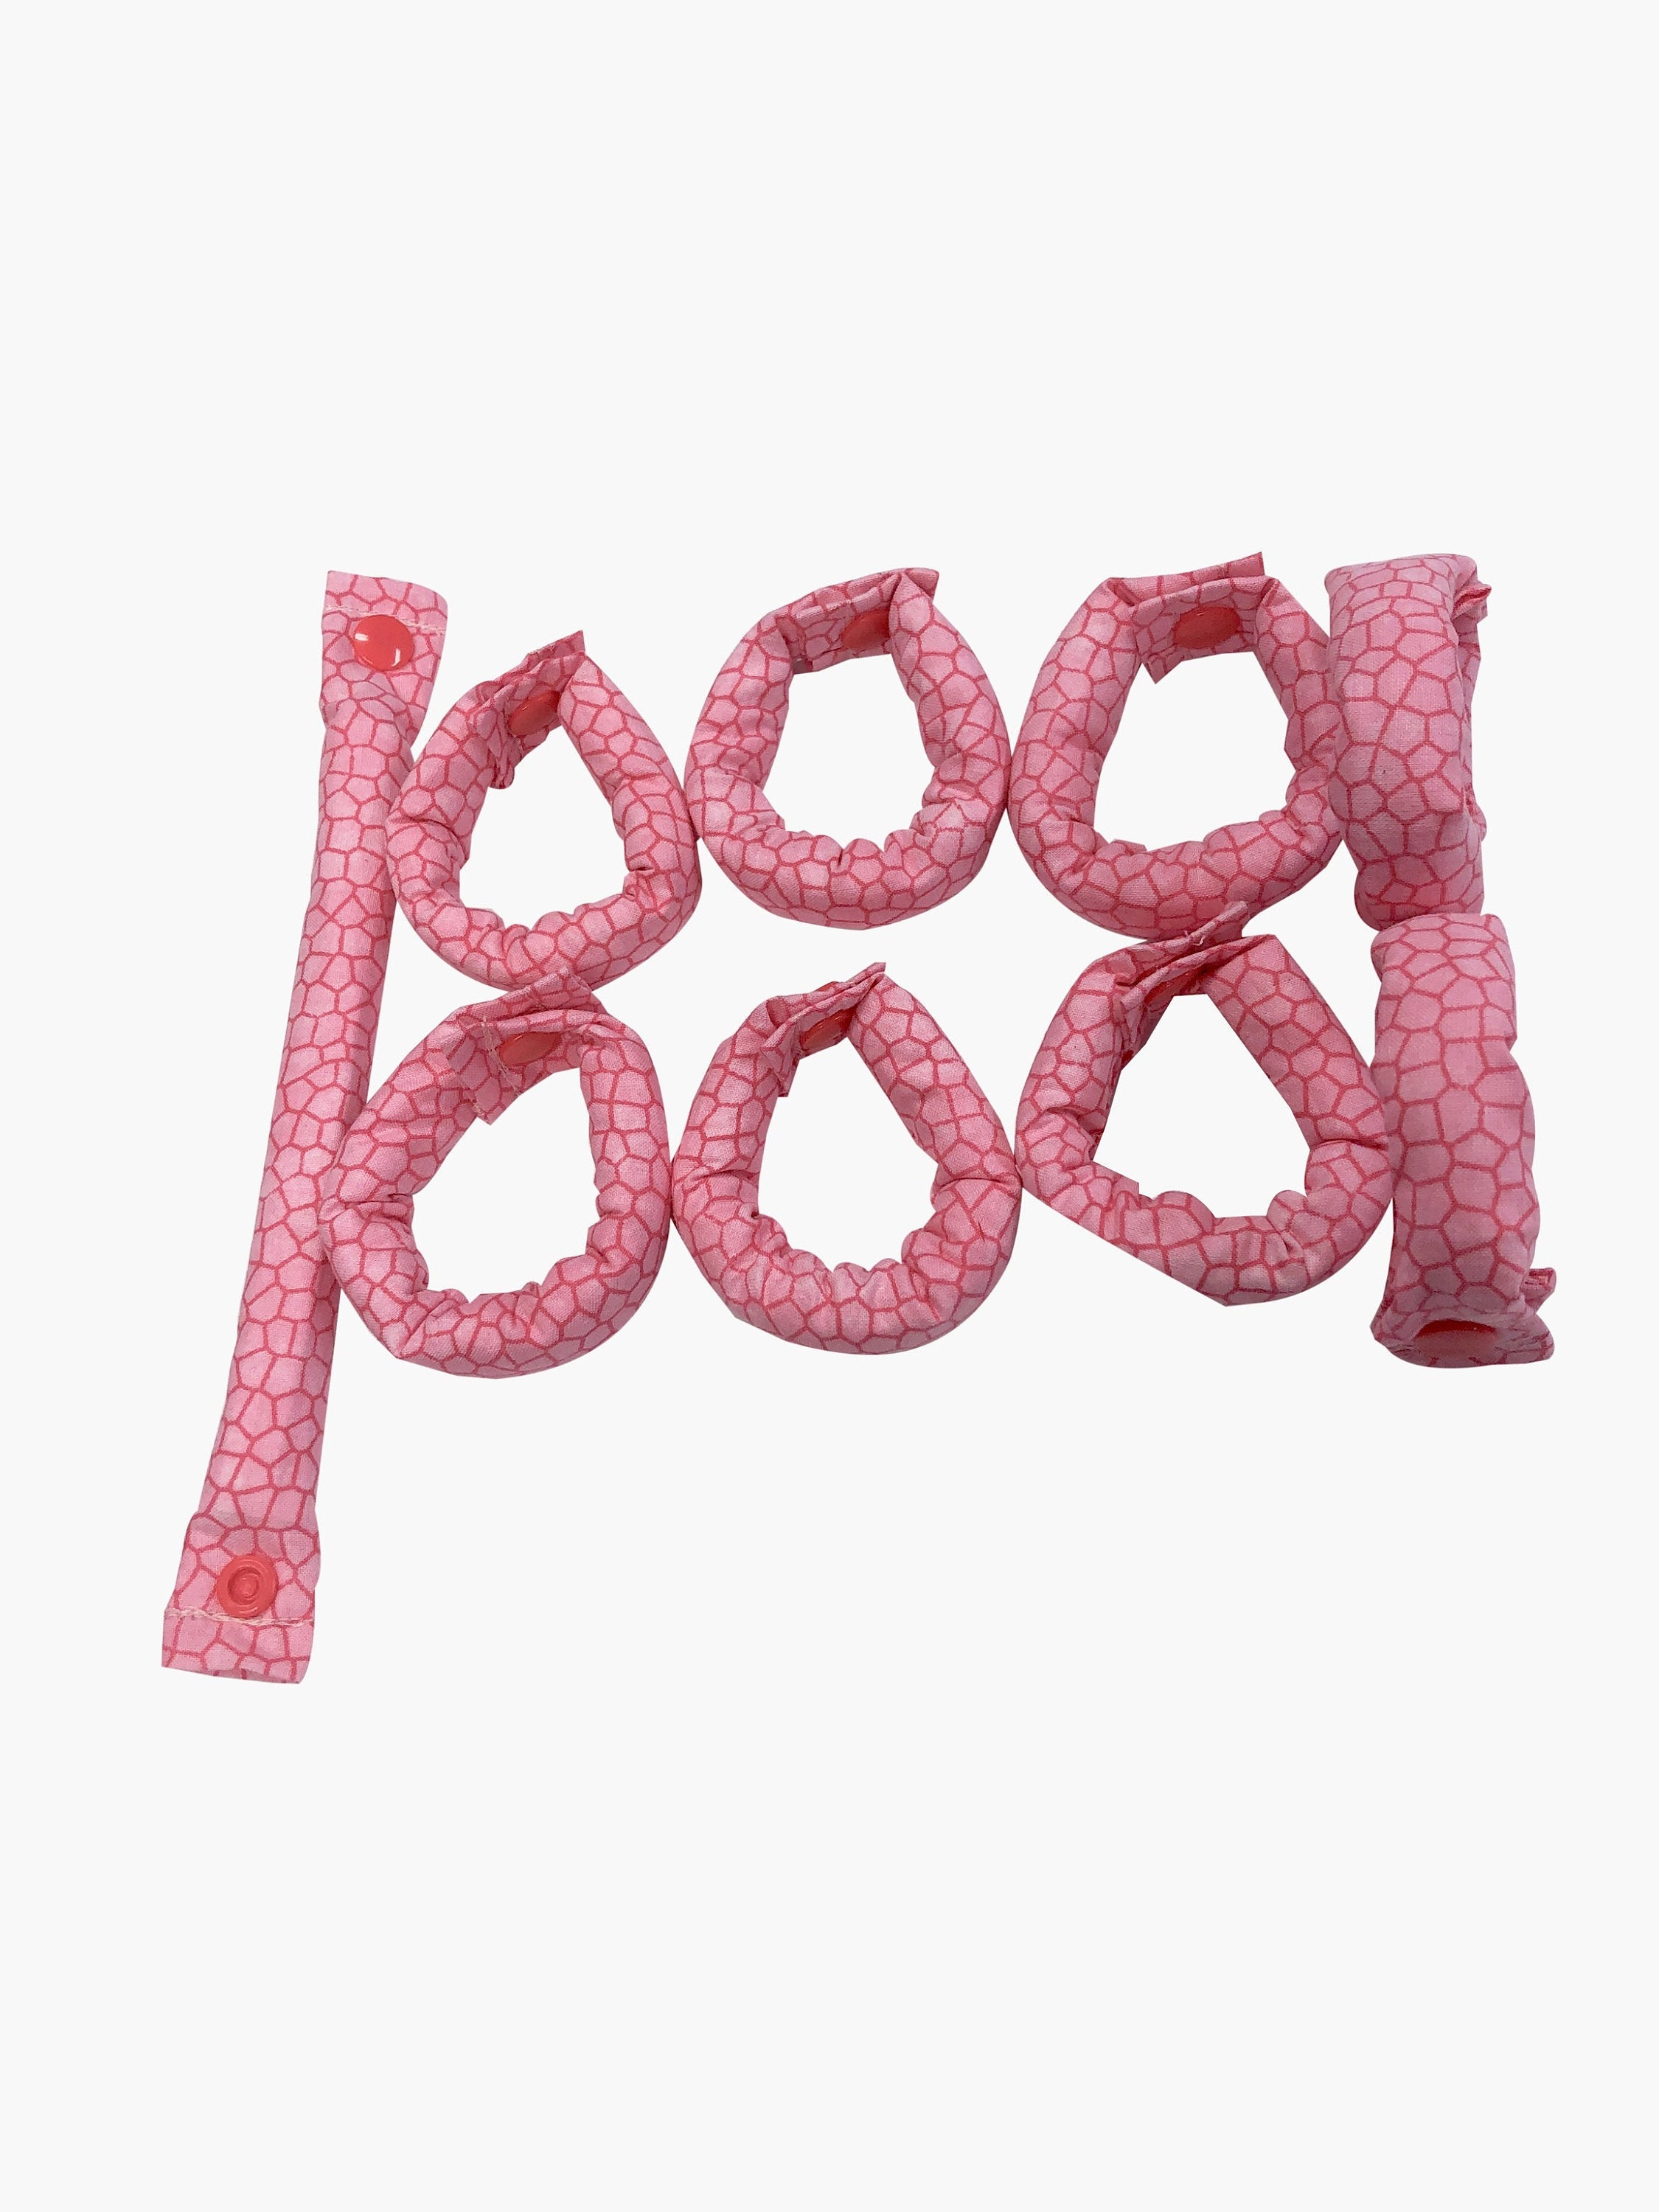 Pink cobblestone/alligator skin Print 3/4 inch fabric hair rollers/Hair Curlers/Hair Accessories